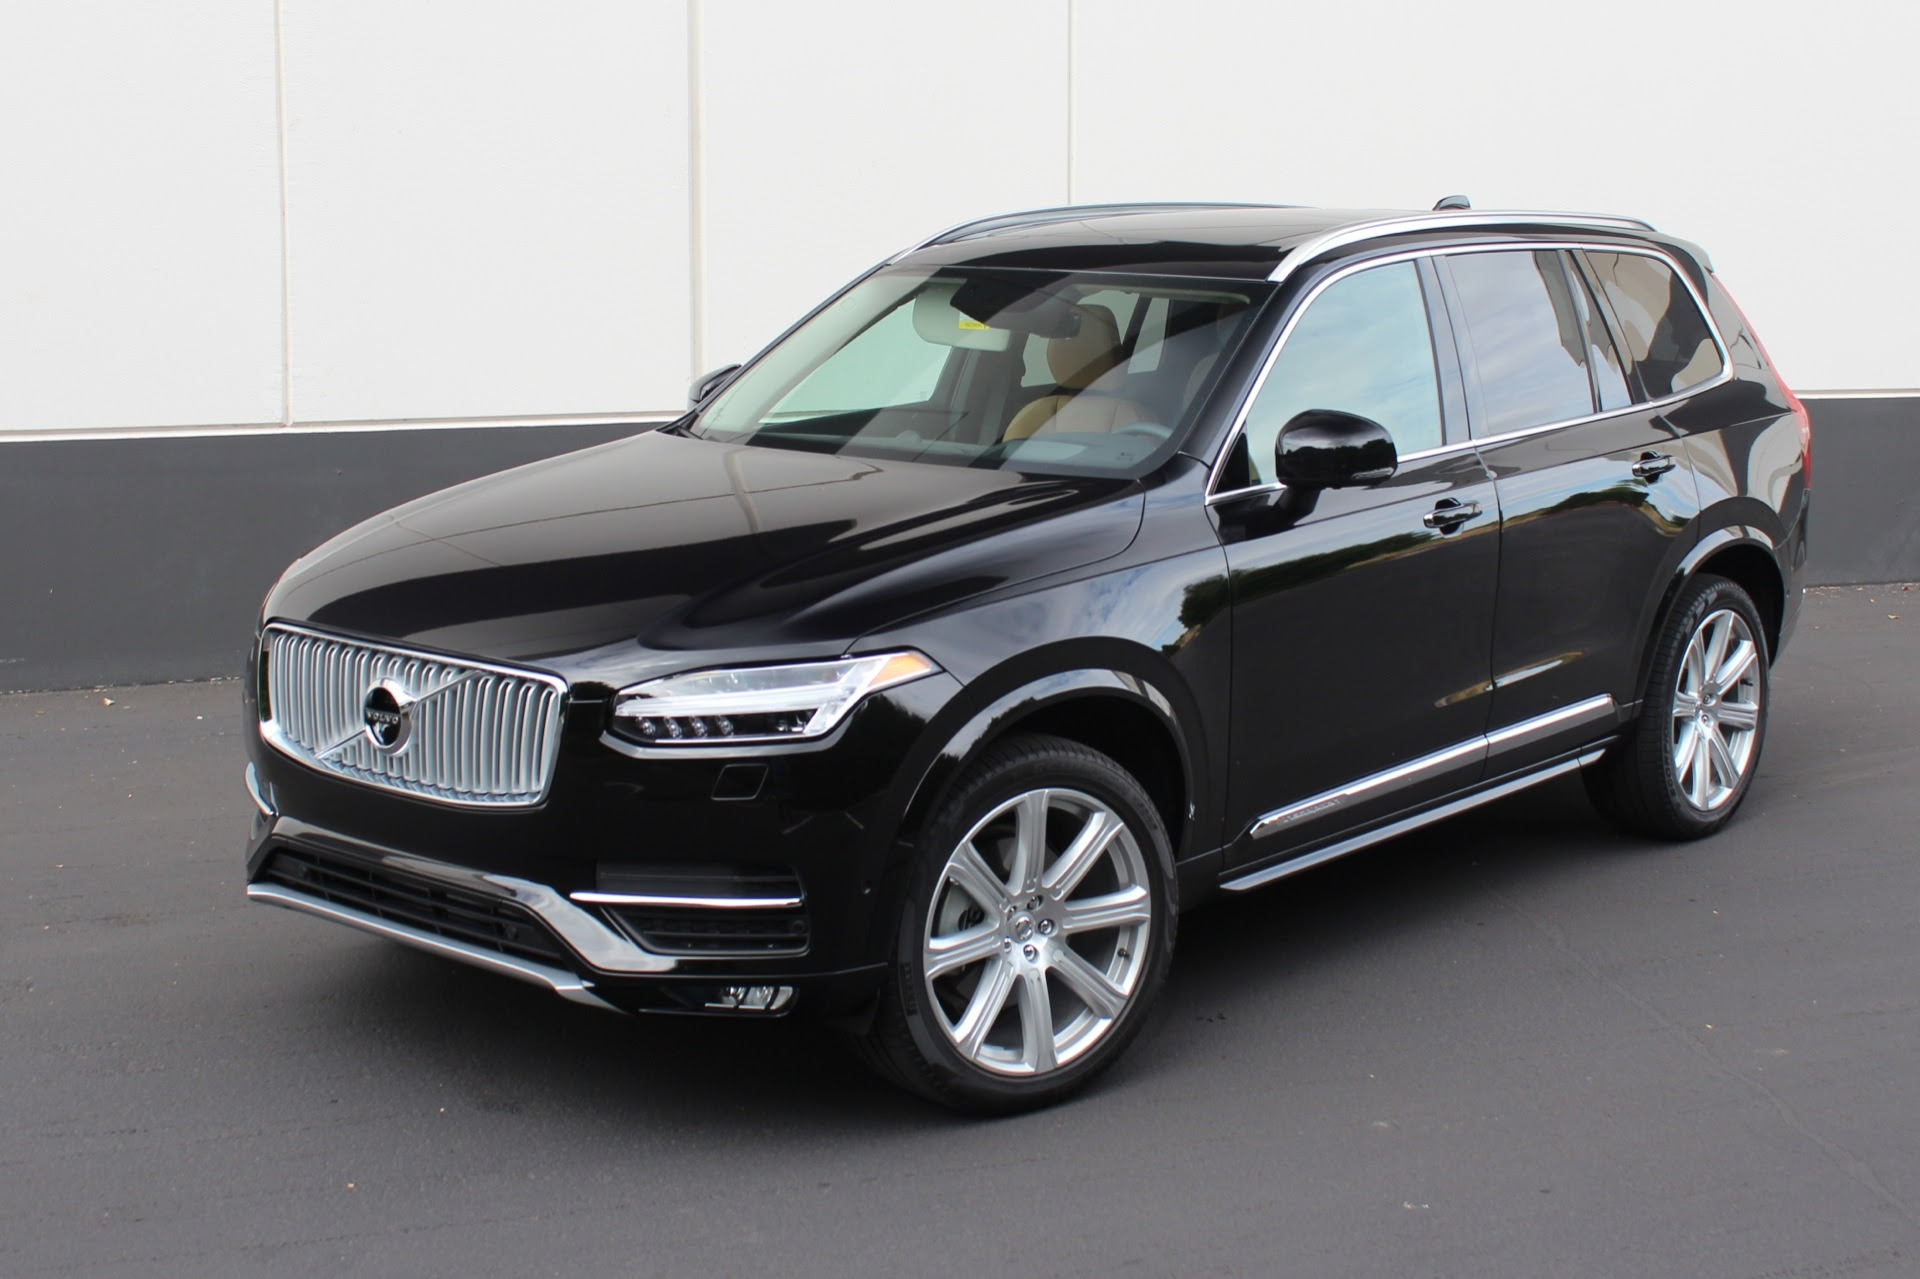 Volvo XC90 Starting Price Down To $44,945 With New T5 Model